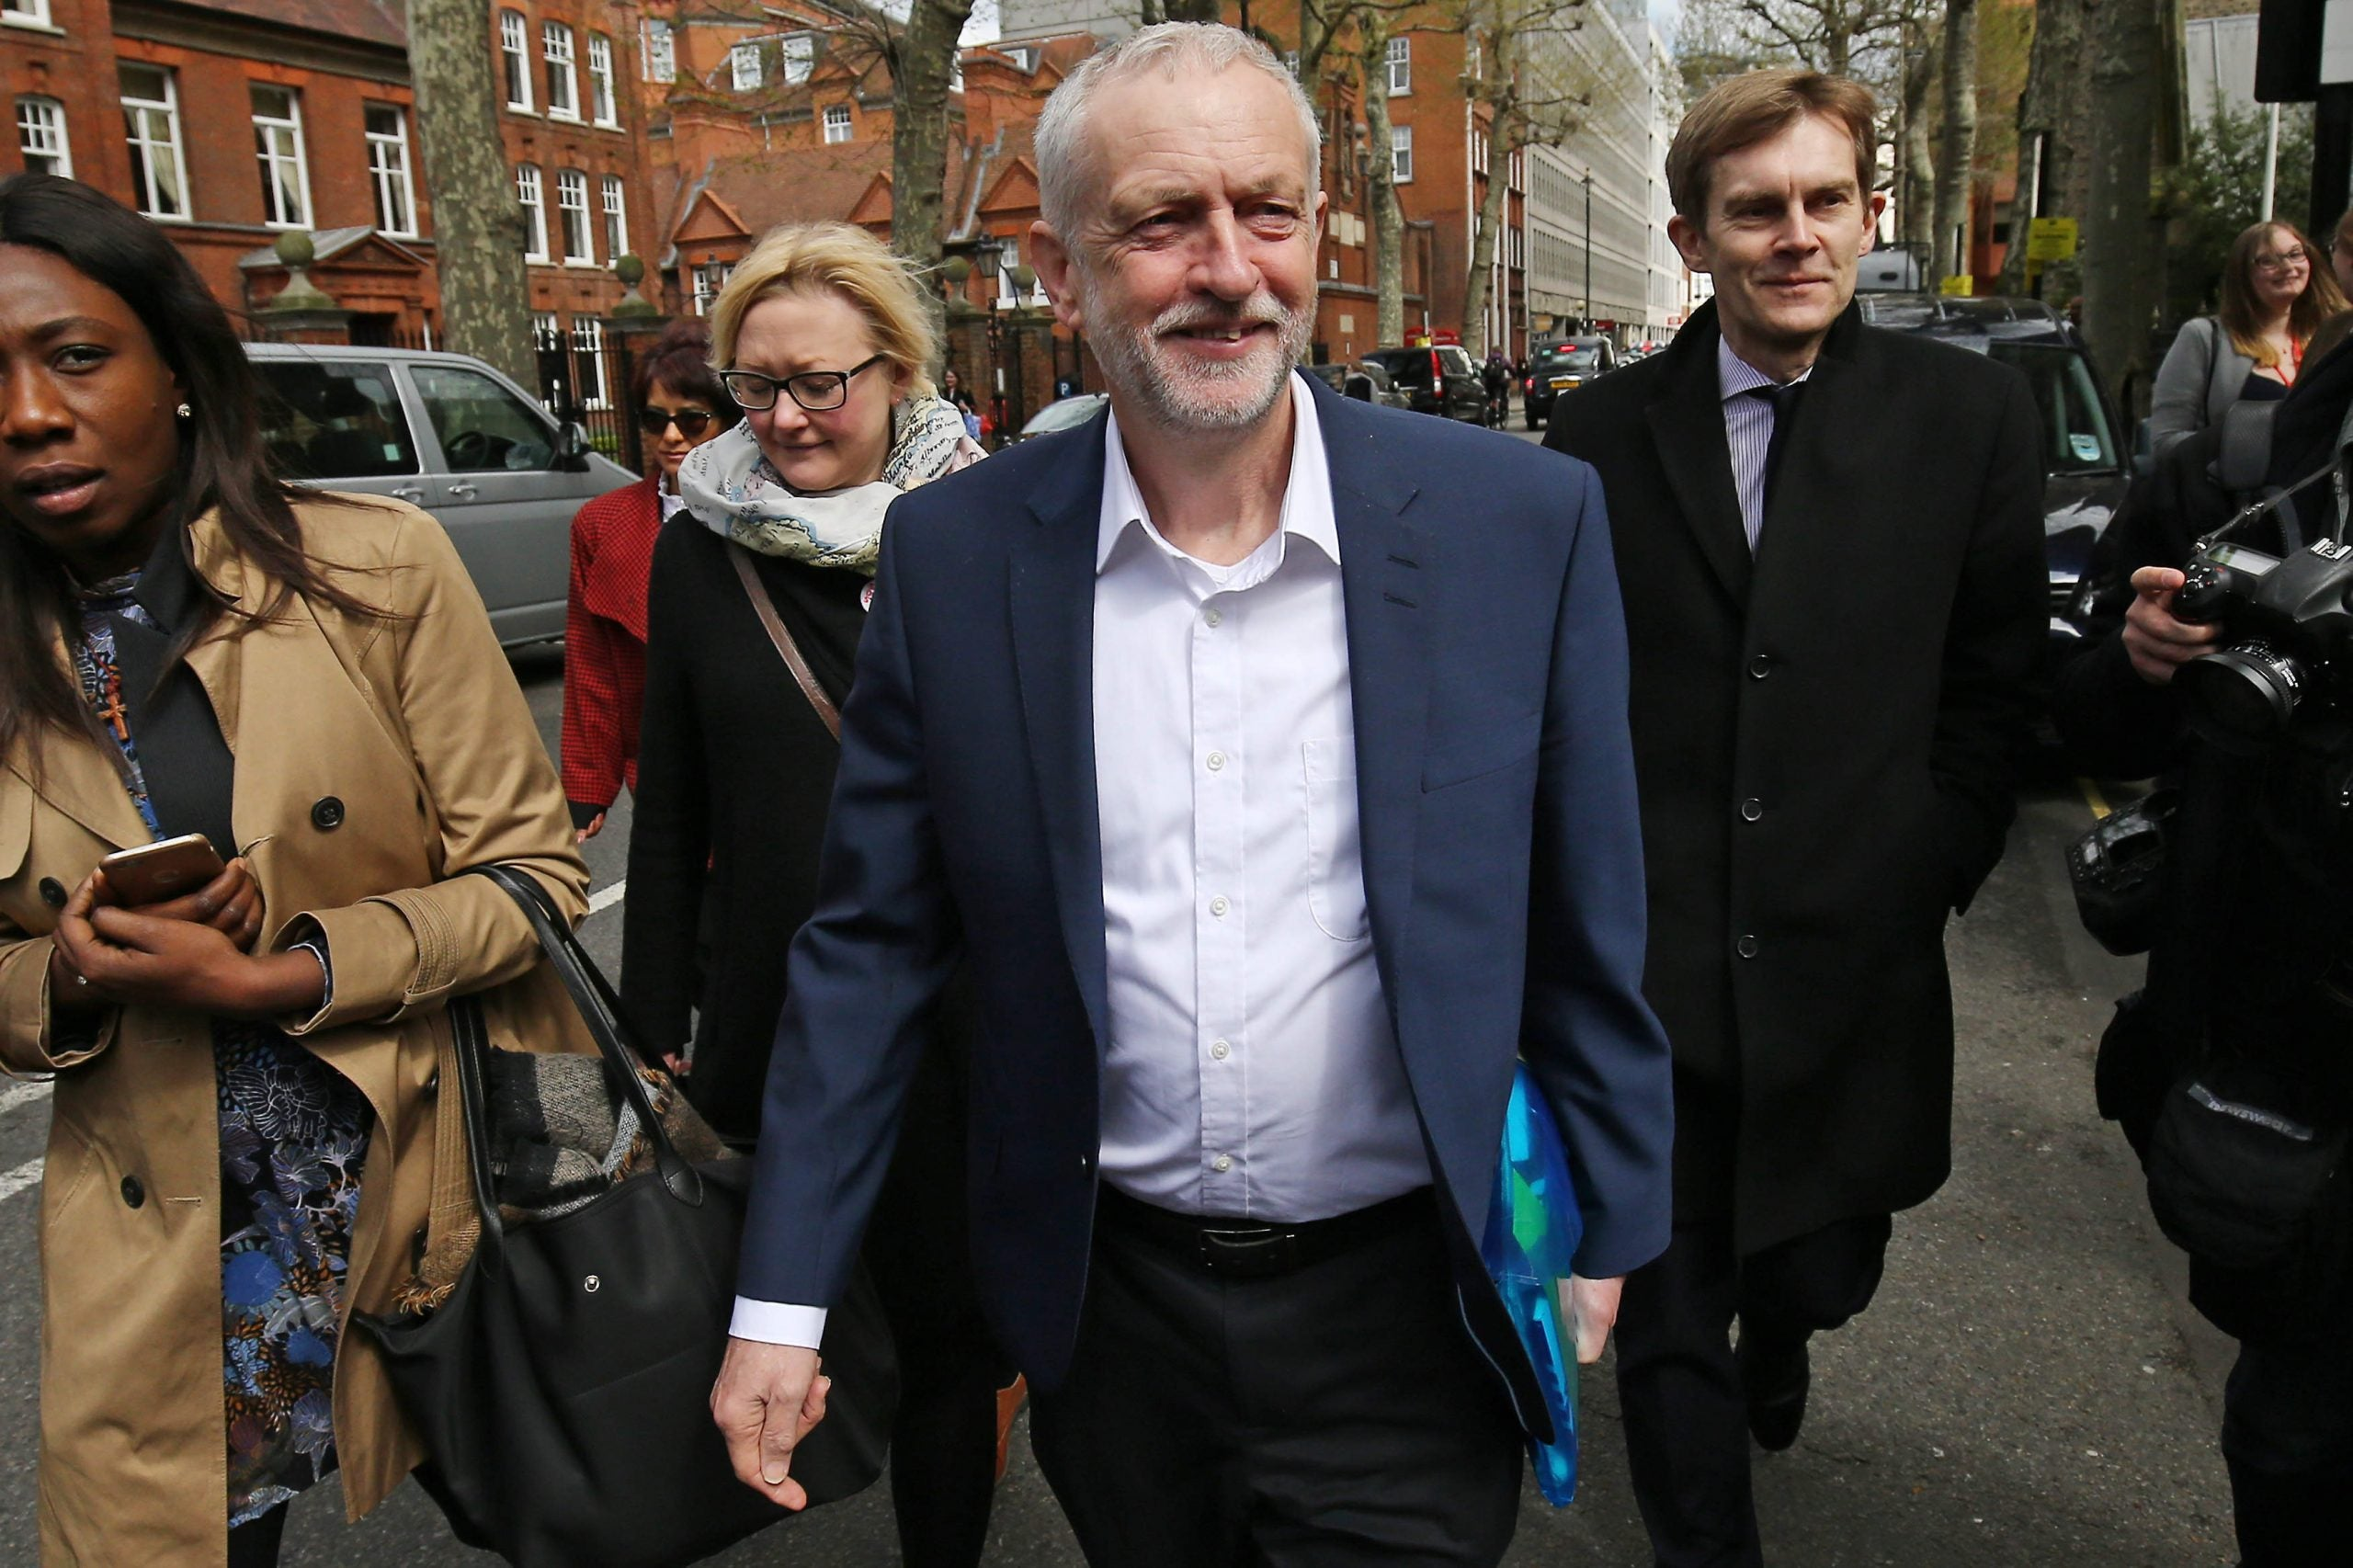 Thursday's elections show Labour is on the right trajectory